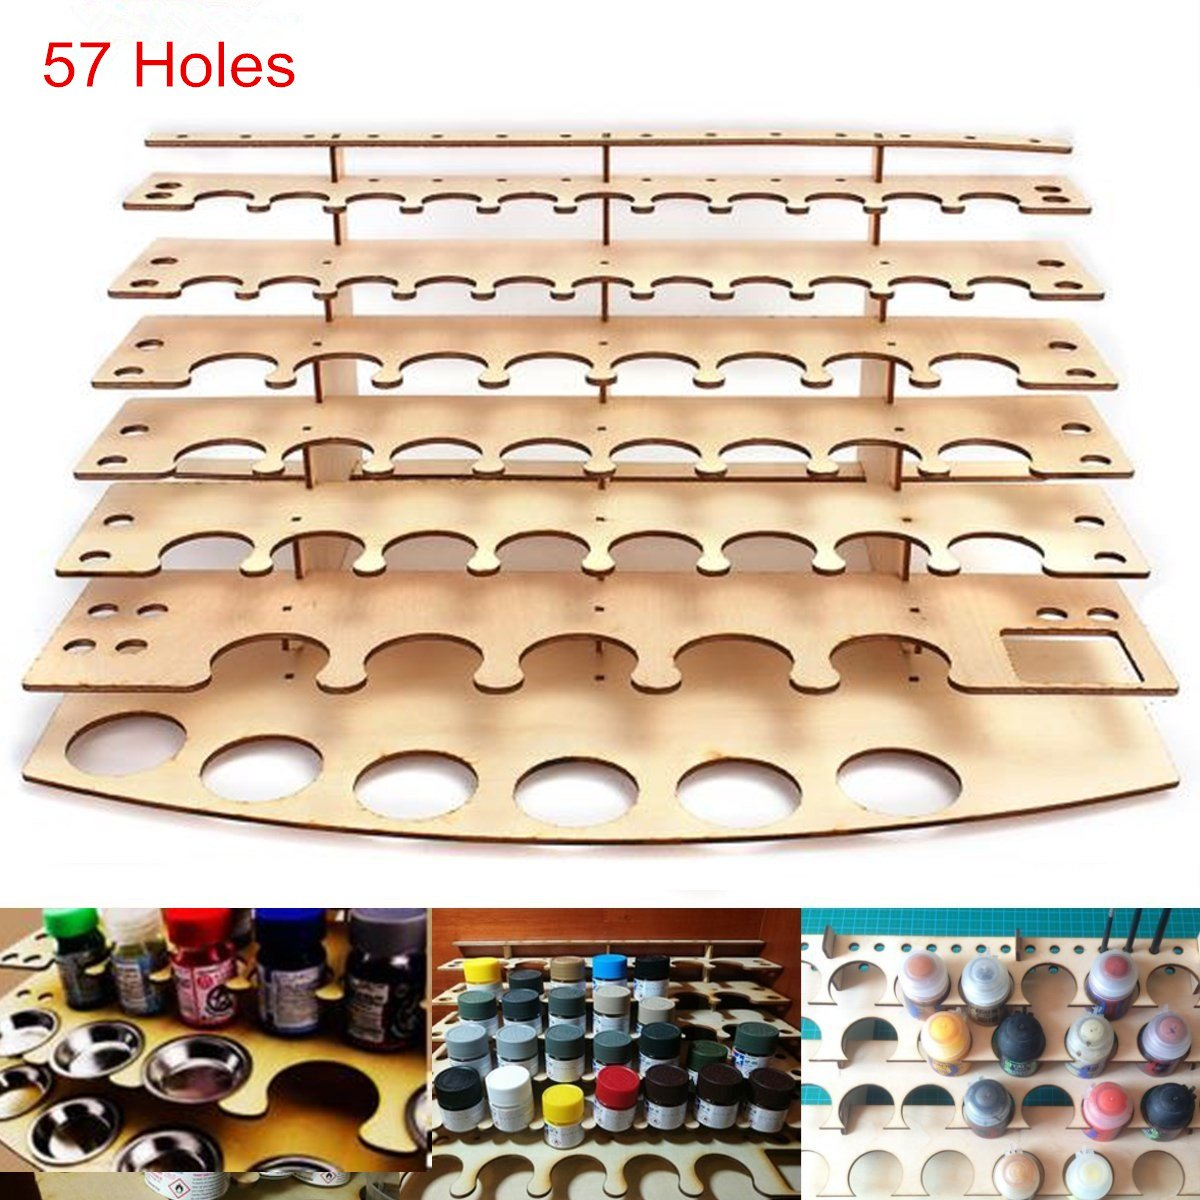 CAVEEN Paint Stand 57 Pots Wooden Acrylic Color Paints Bottle Storage Rack Holder Modular Organizer